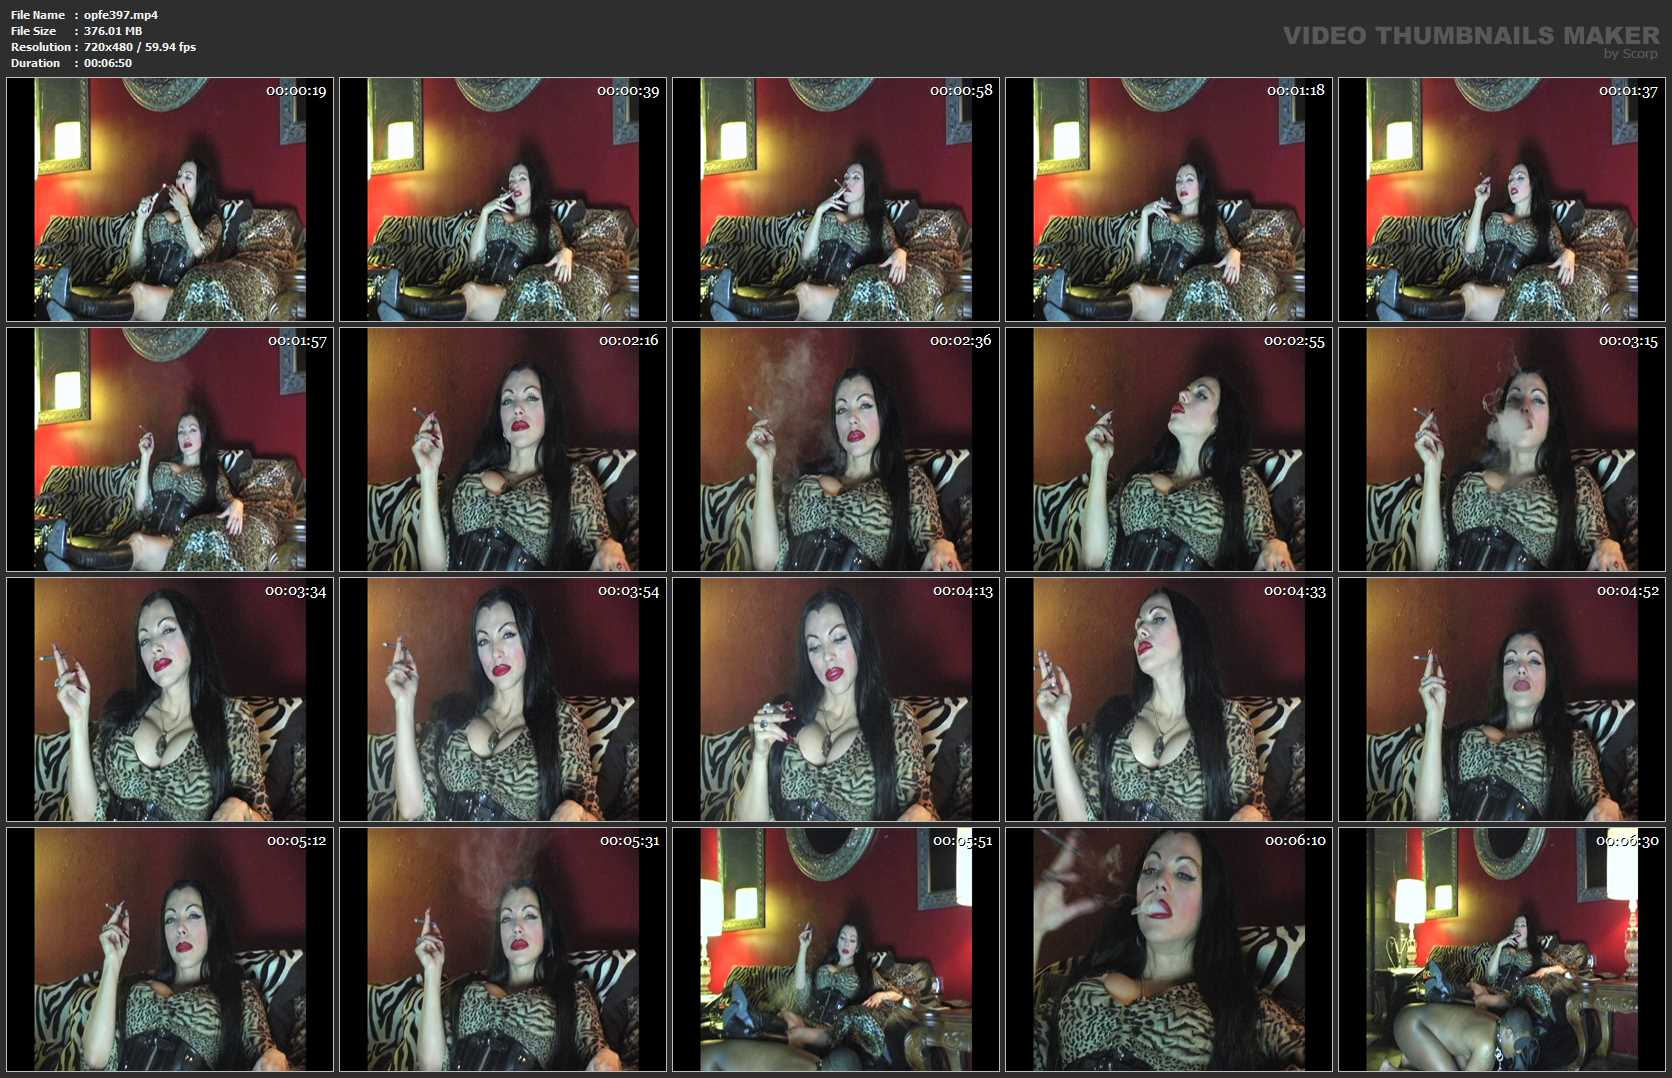 Goddess Cheyenne In Scene: Smoking on human ottoman - OPULENTFETISH / GODDESSCHEYENNE - SD/480p/MP4